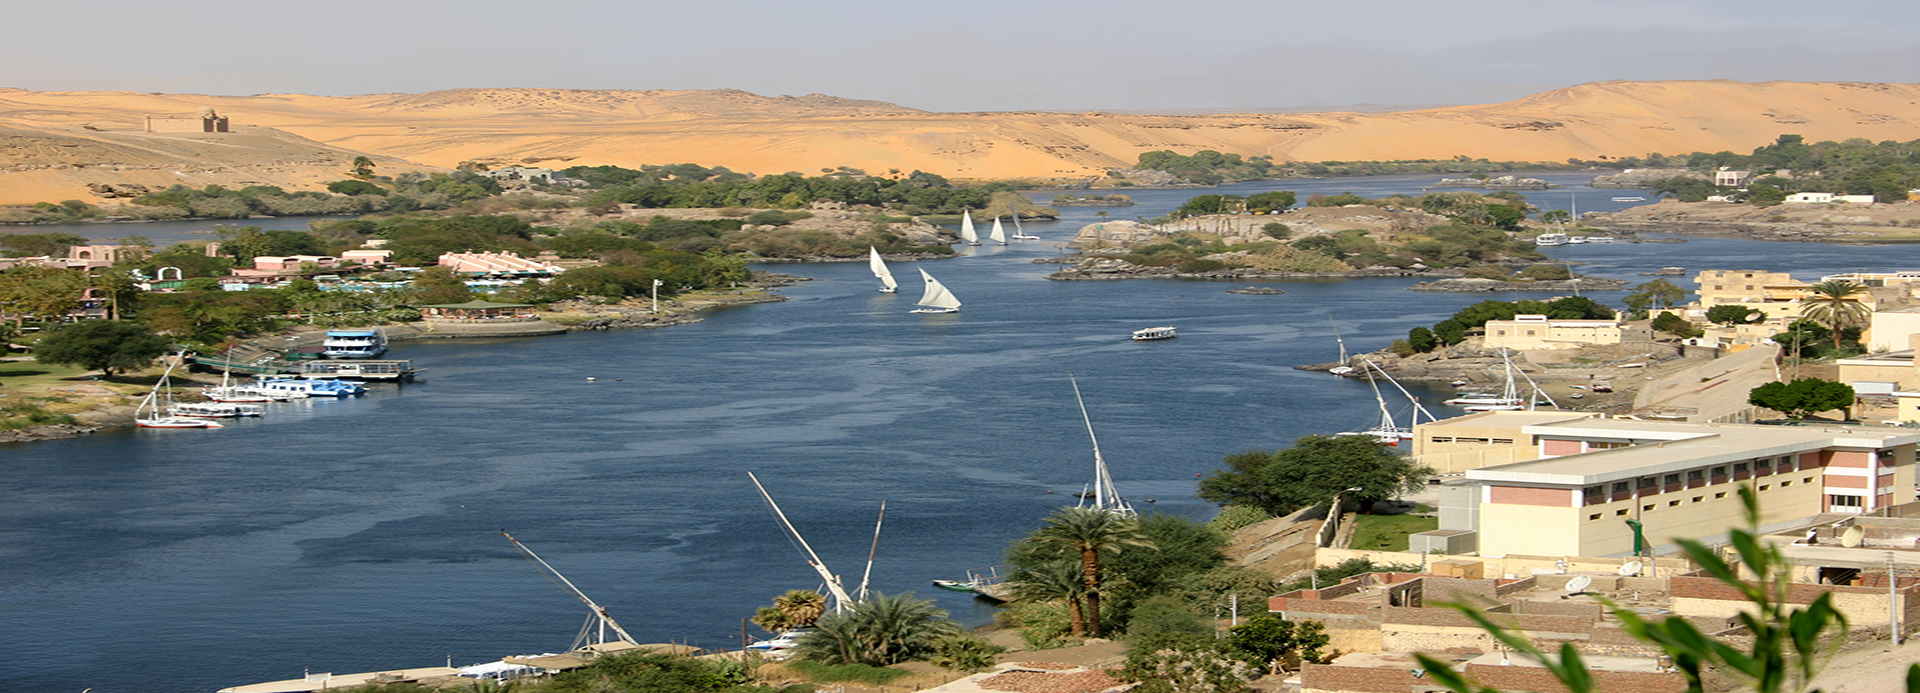 Wow Travel Egypt